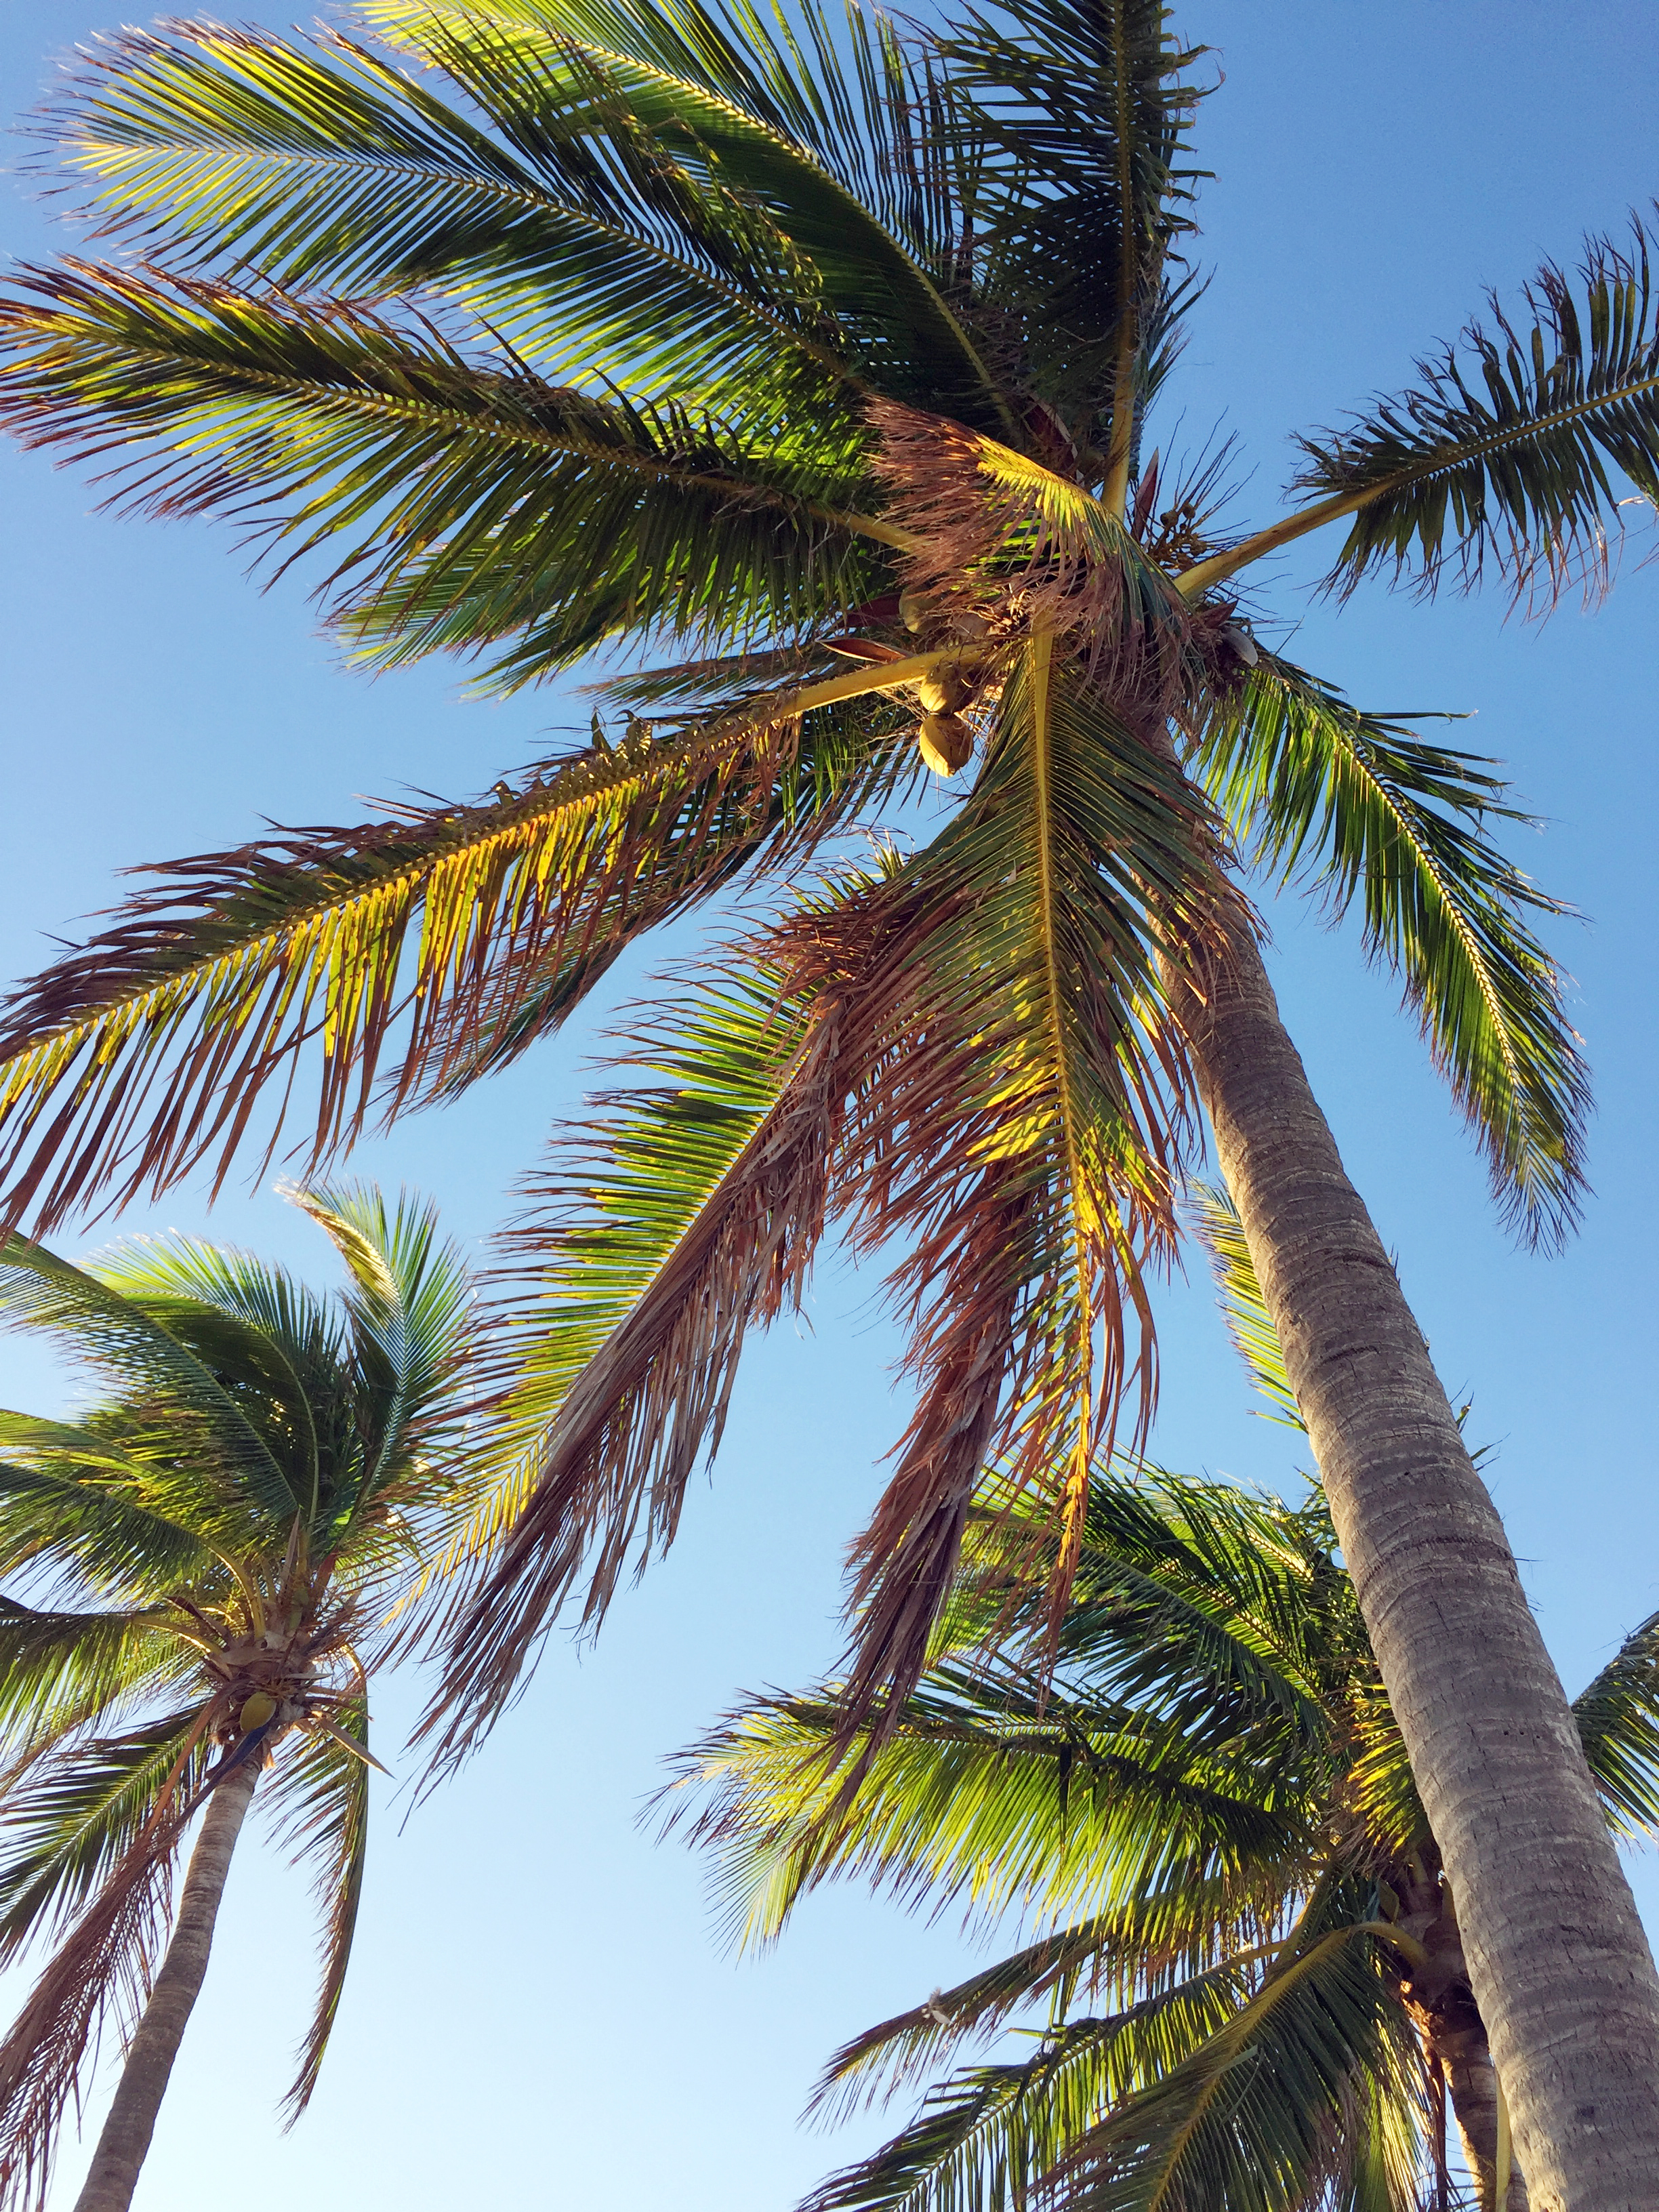 amy_chen_design_key_west_higgs_beach_palm_trees.JPG